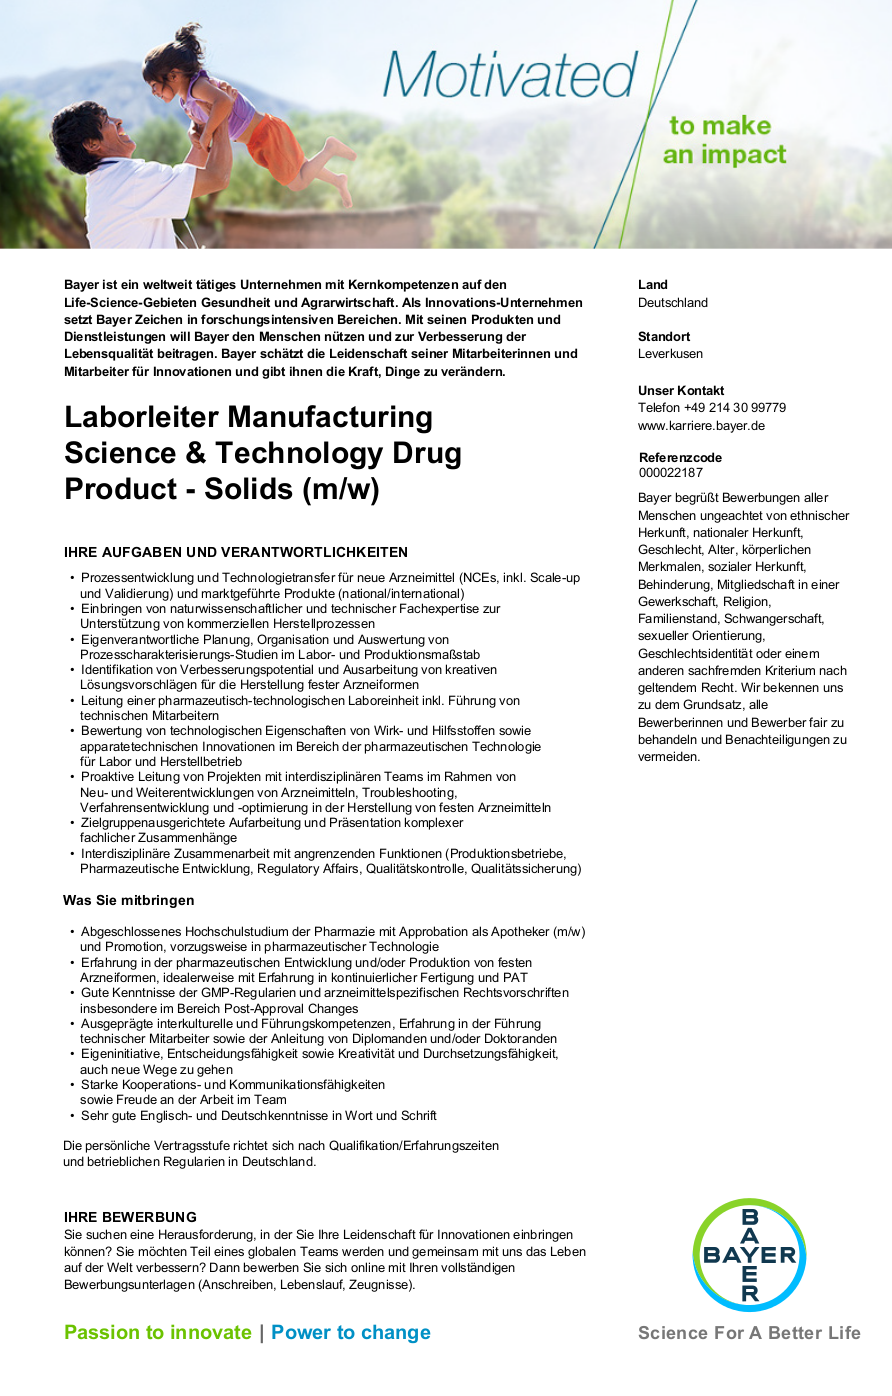 laborleiter manufacturing science technology drug product solids m w jobs stellenangebote in leverkusen nordrhein westfalen pharma jobs - Bayer Bewerbung